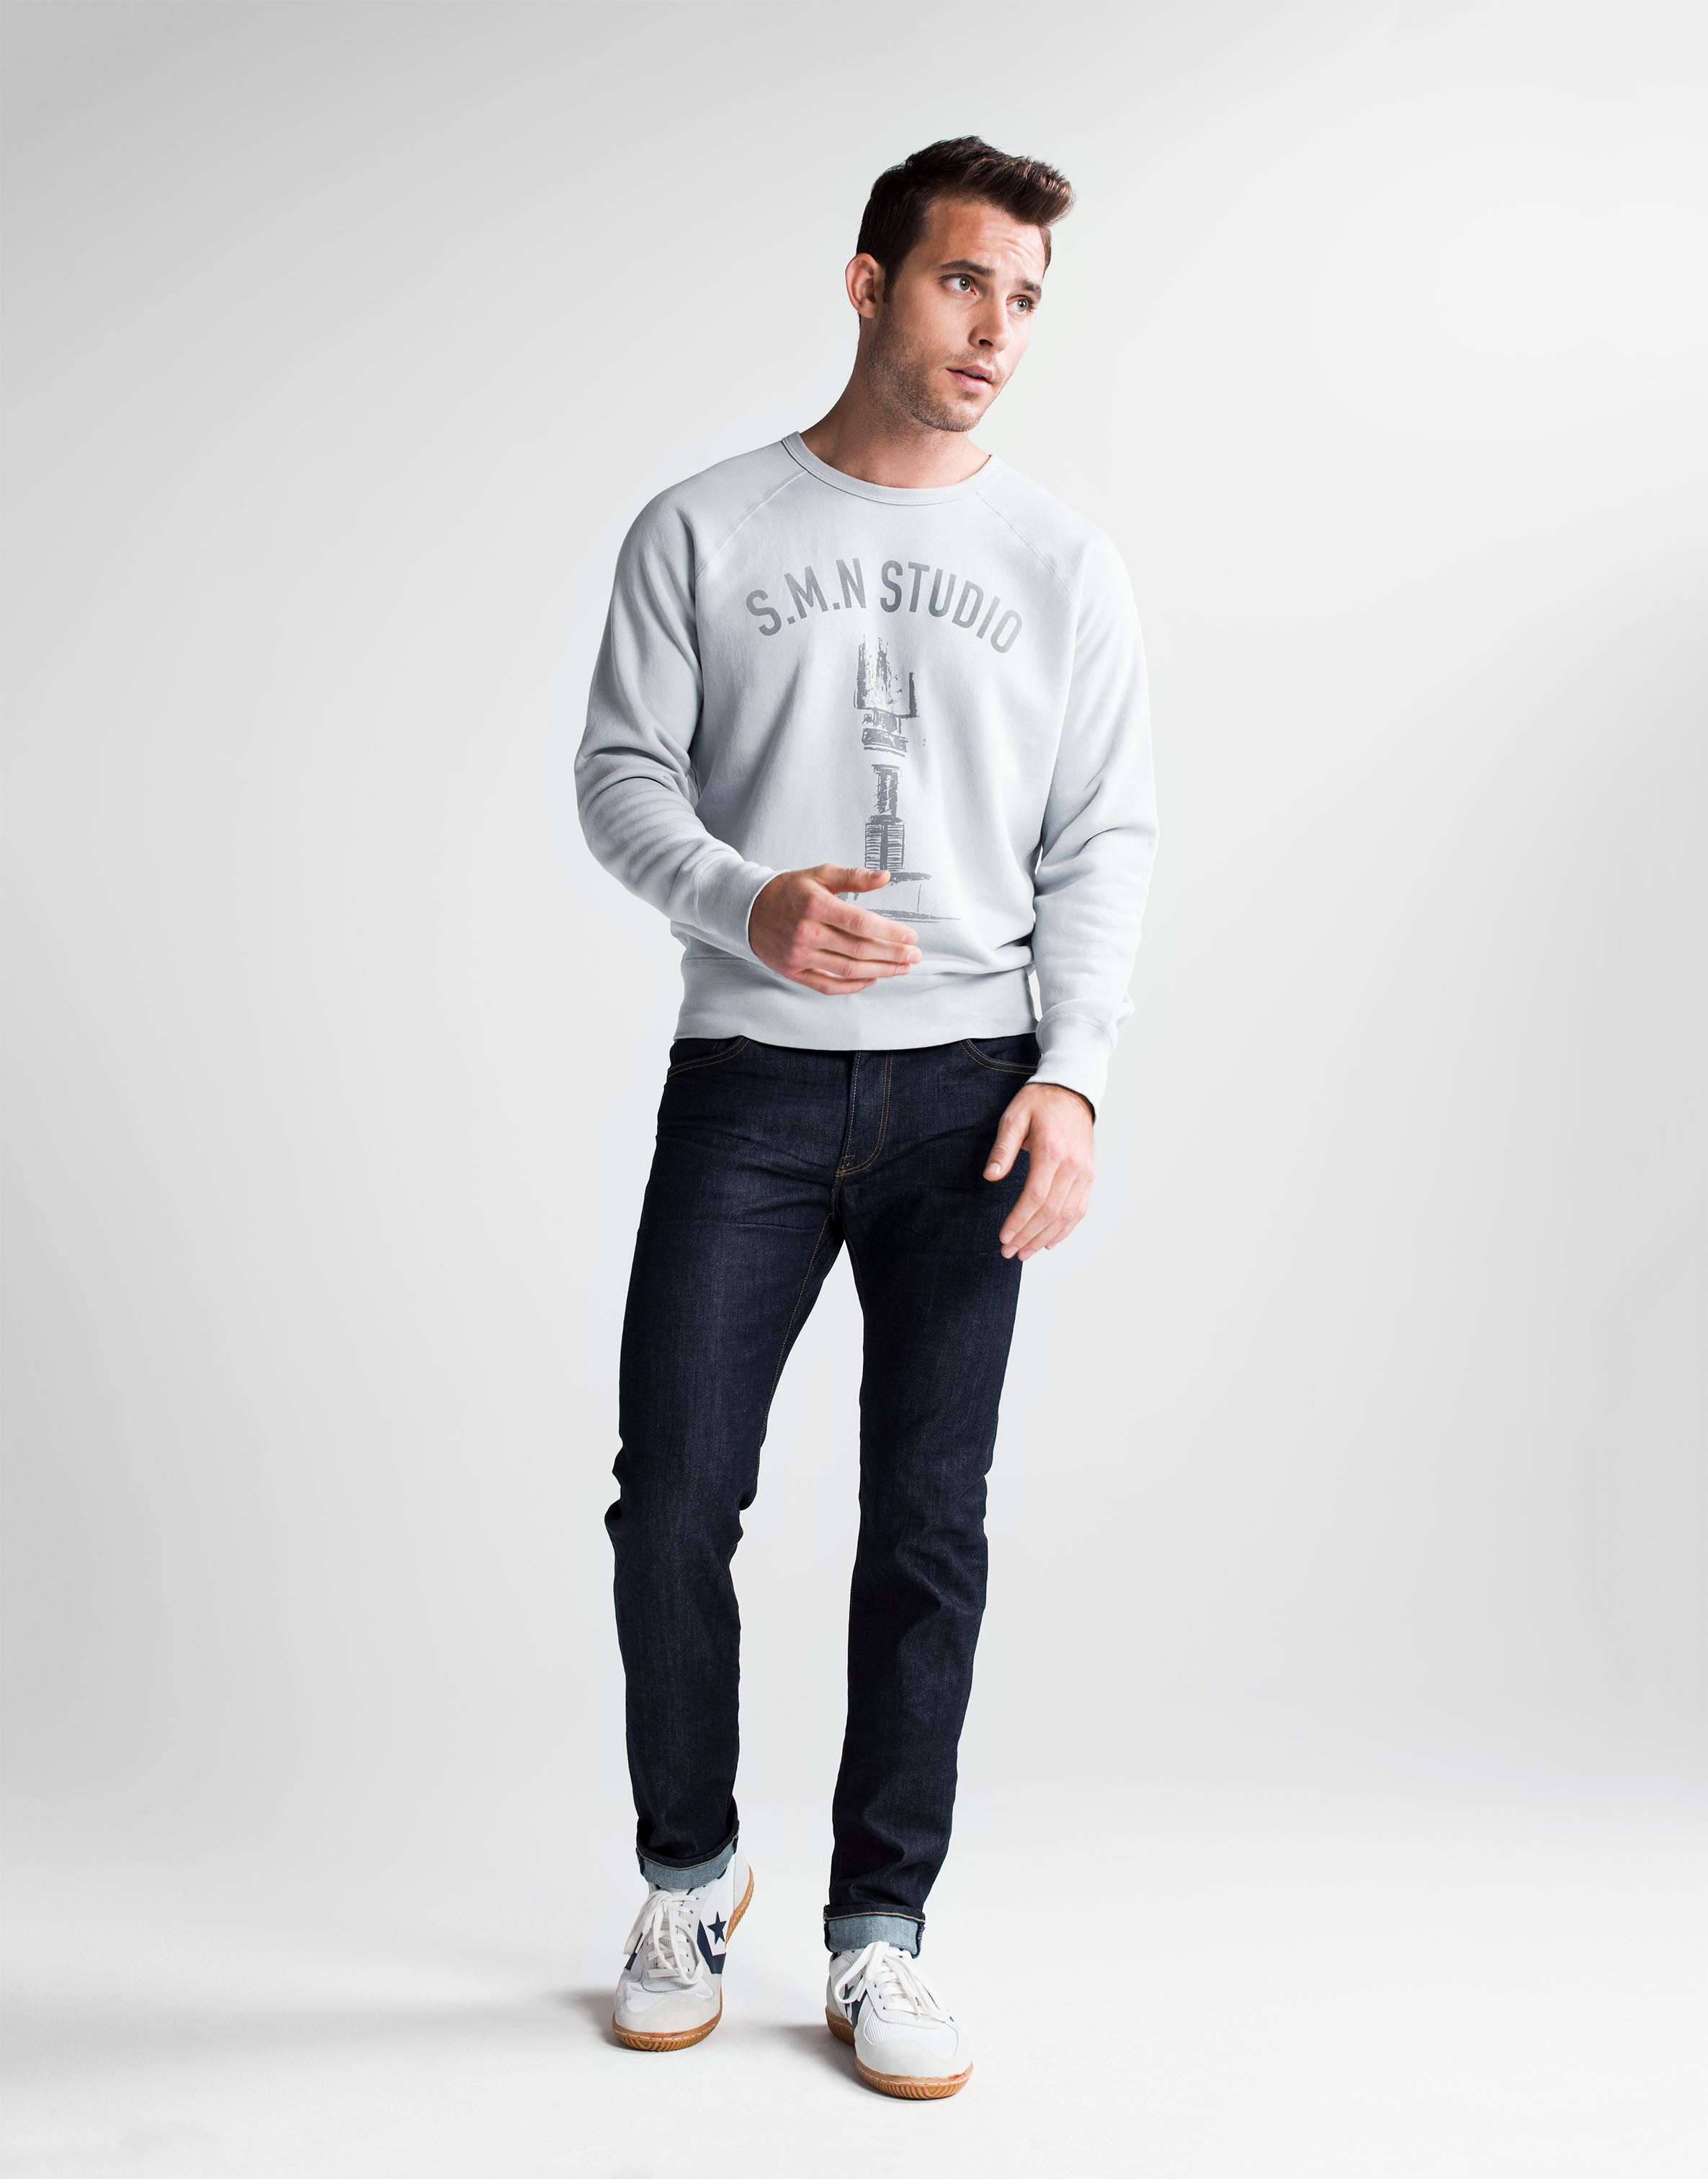 Brown haired athletic model standing wearing SMN Studio's Bond in Bravo jeans and S.M.N Studio printed grey crewneck sweatshirt. The jeans are a slim straight raw denim washed jean.